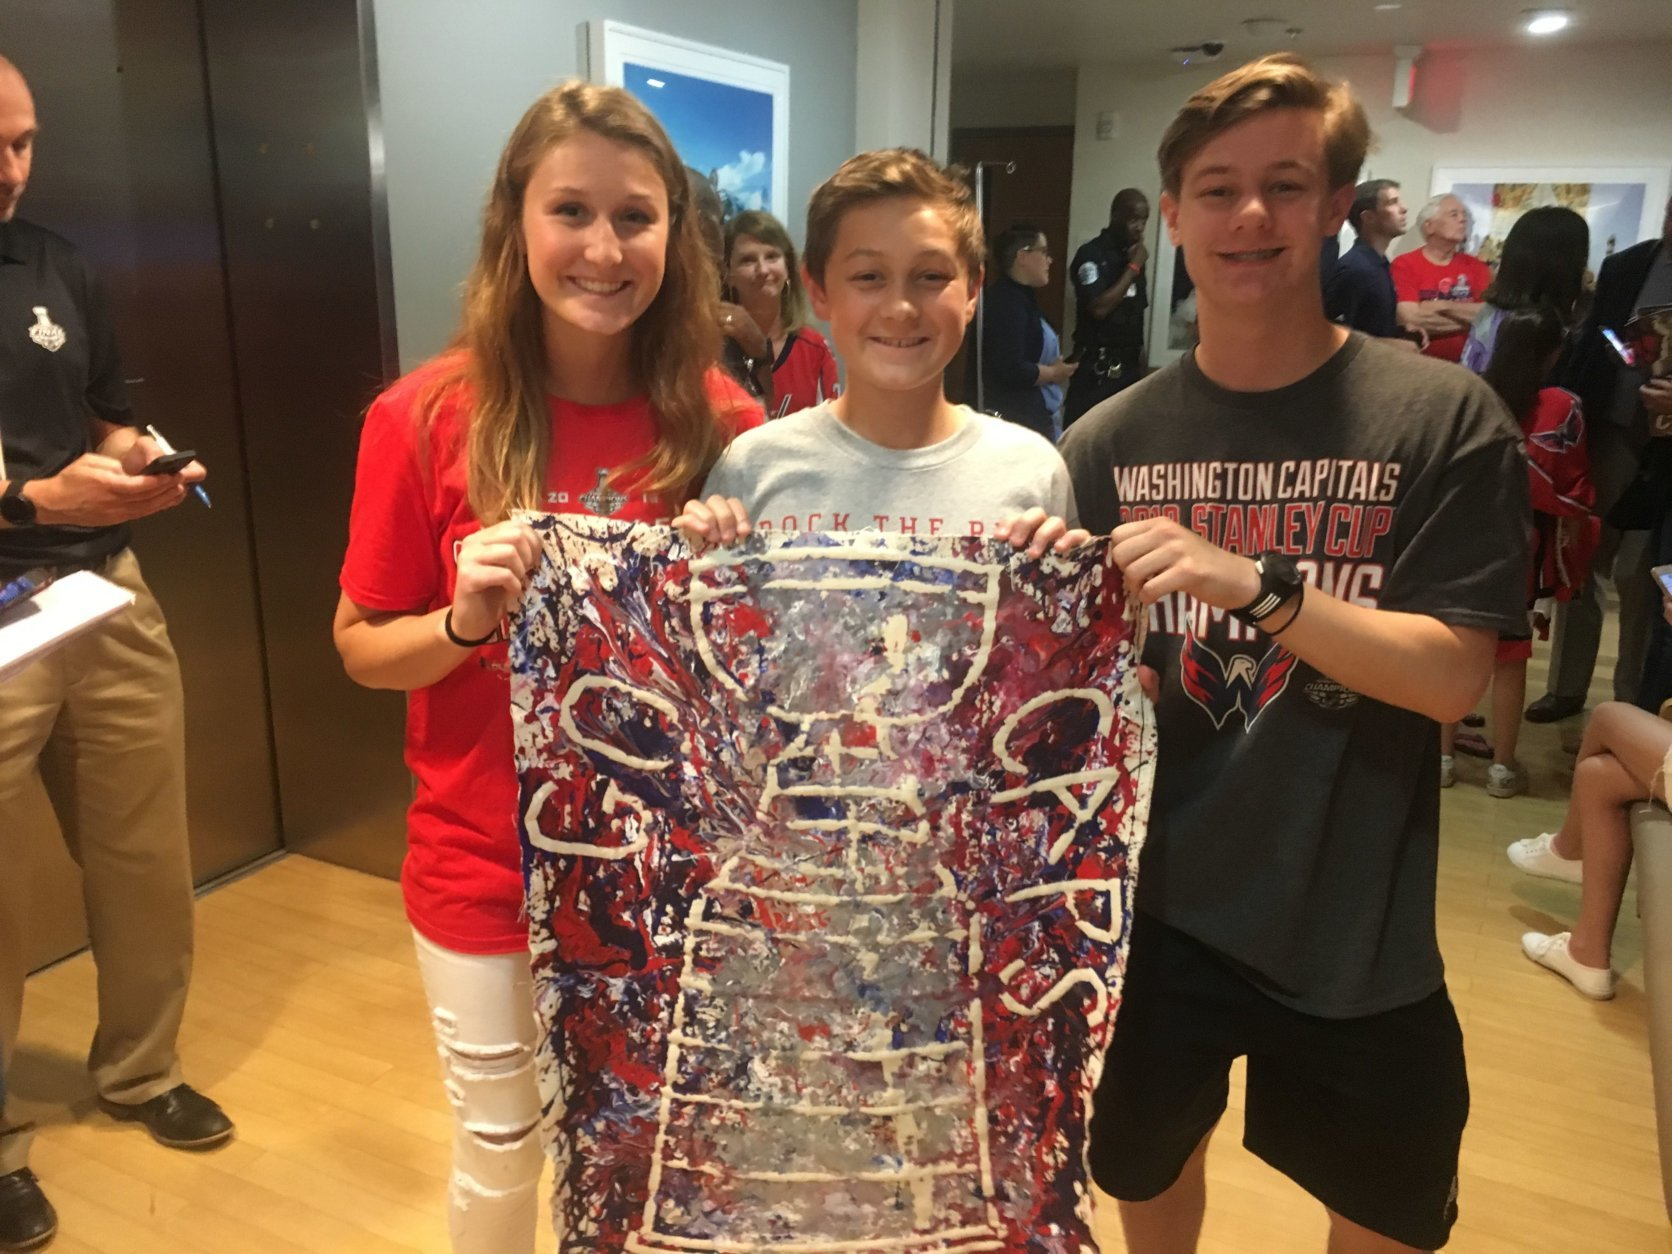 Michael from Wisconsin suffers from LCH, a rare disease in which the body makes too many Langerhans cells, which is a form of white blood cell. HE made this syringe art painting before the Capital won the cup and feels it may have been good luck for the team.